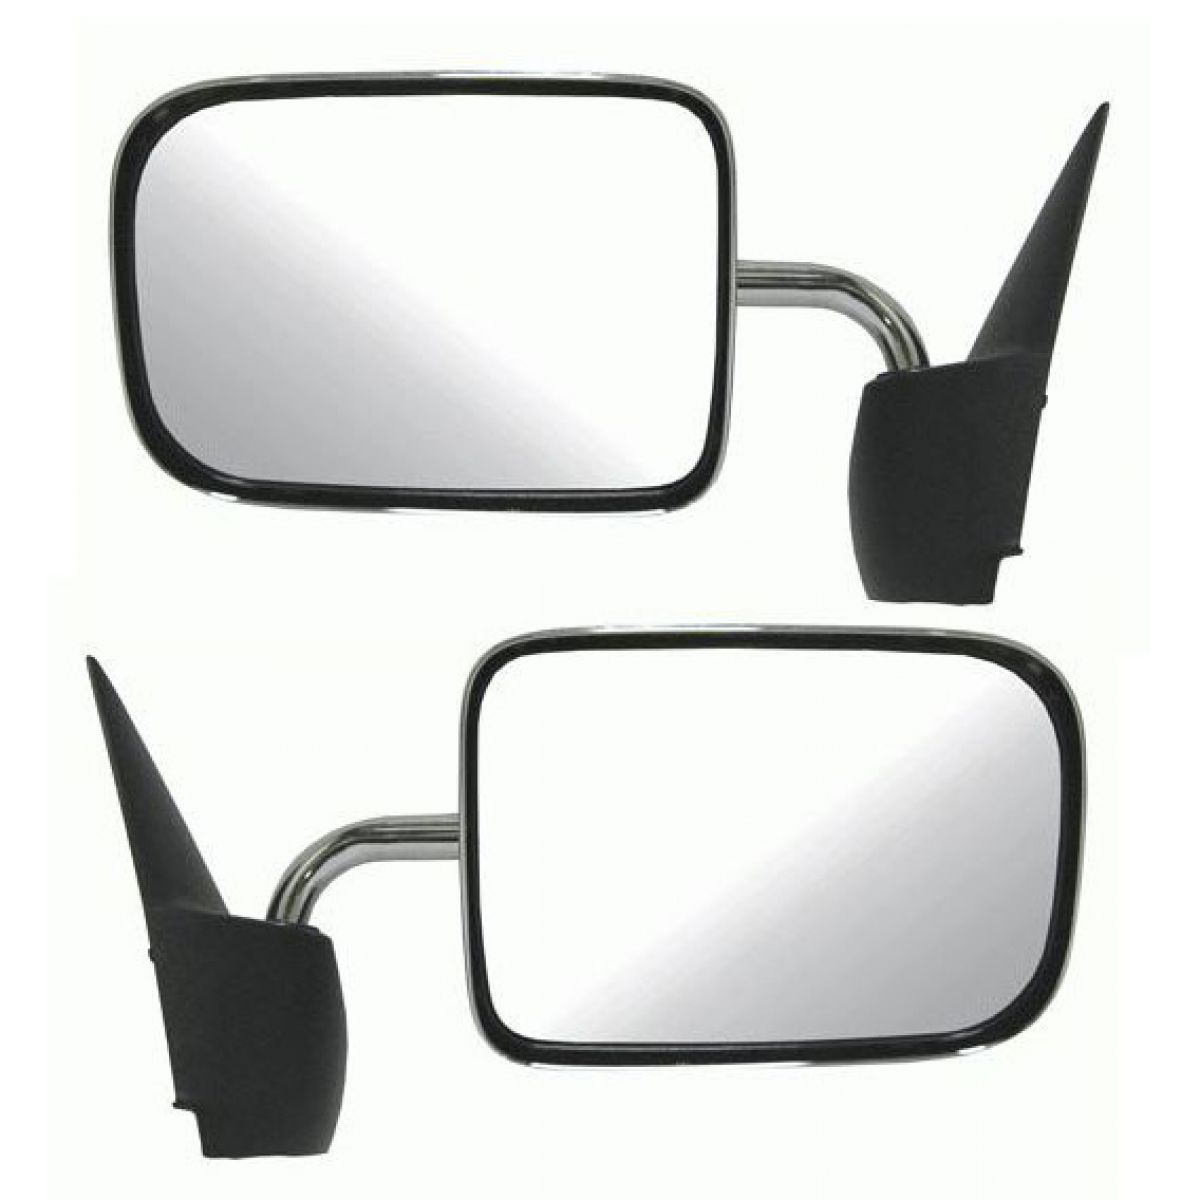 94-97 Ram Pickup Truck Manual Black Rear View Mirror Left /& Right Side SET PAIR